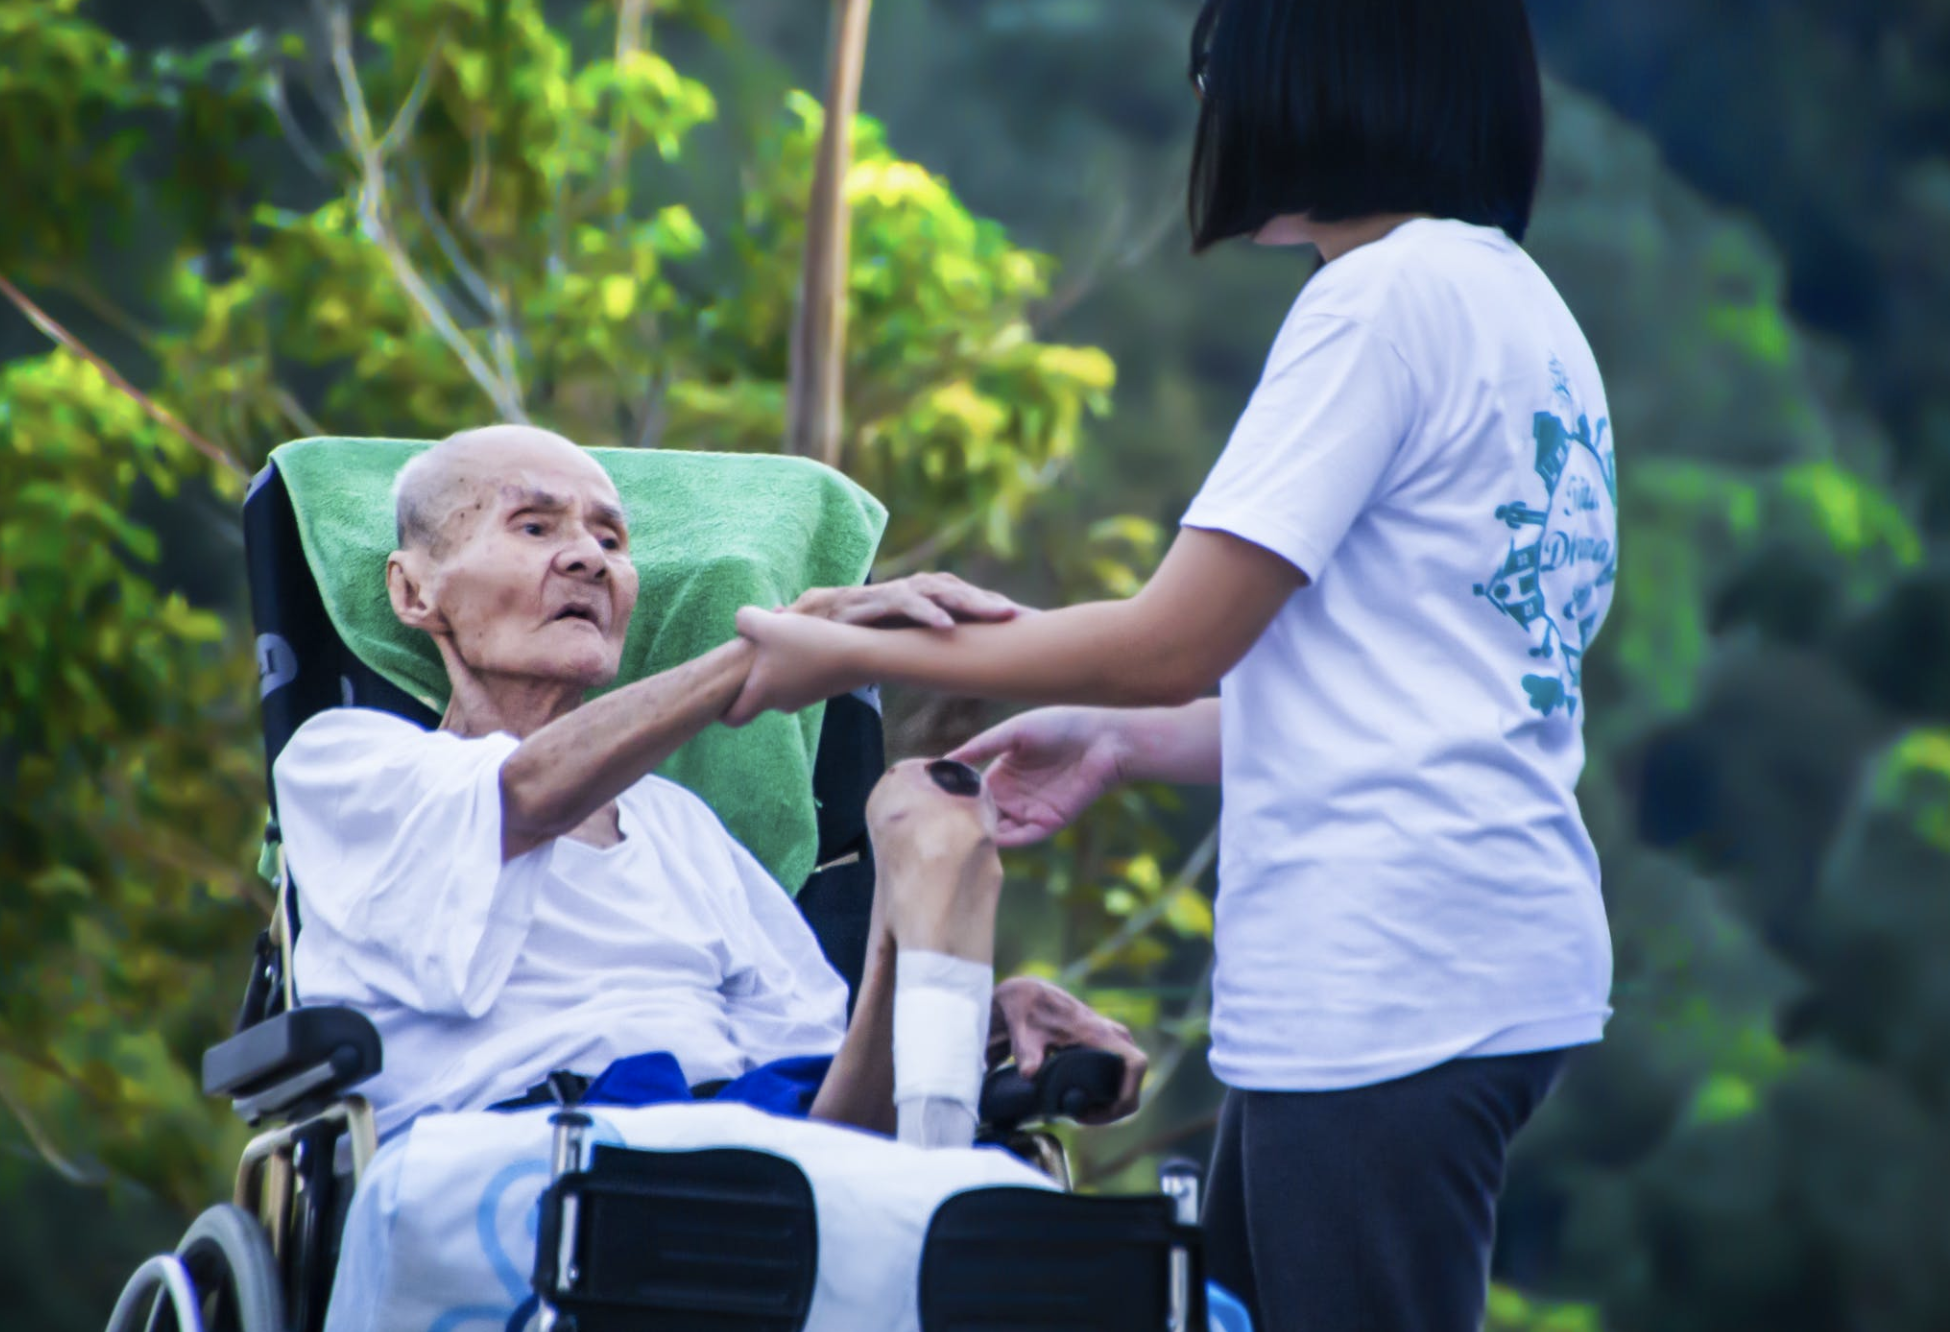 caregiver duties - assisting an elderly in a wheelchair